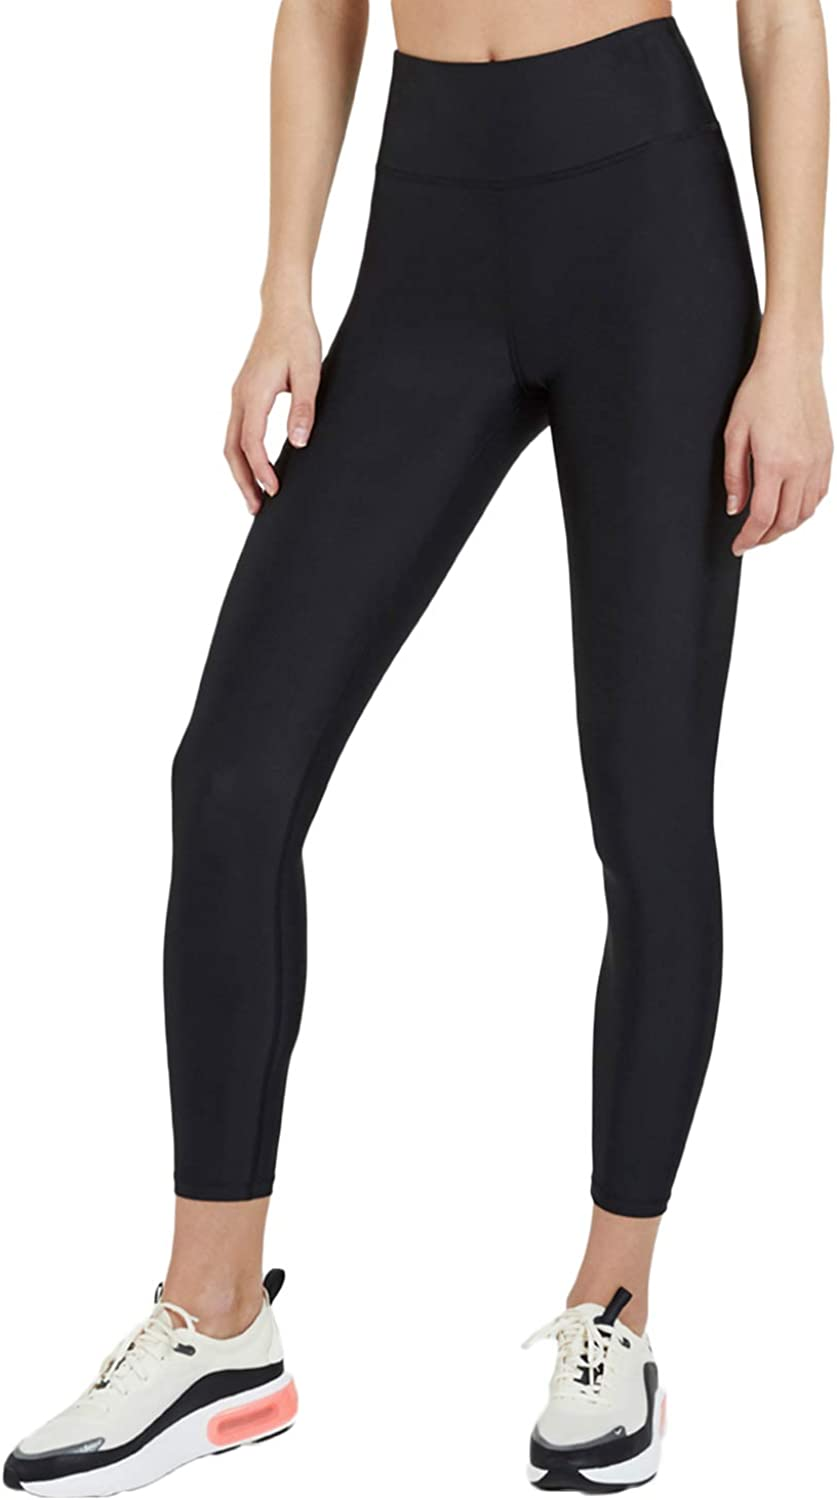 PE Nation - Training Super beauty Denver Mall product restock quality top Day Legging